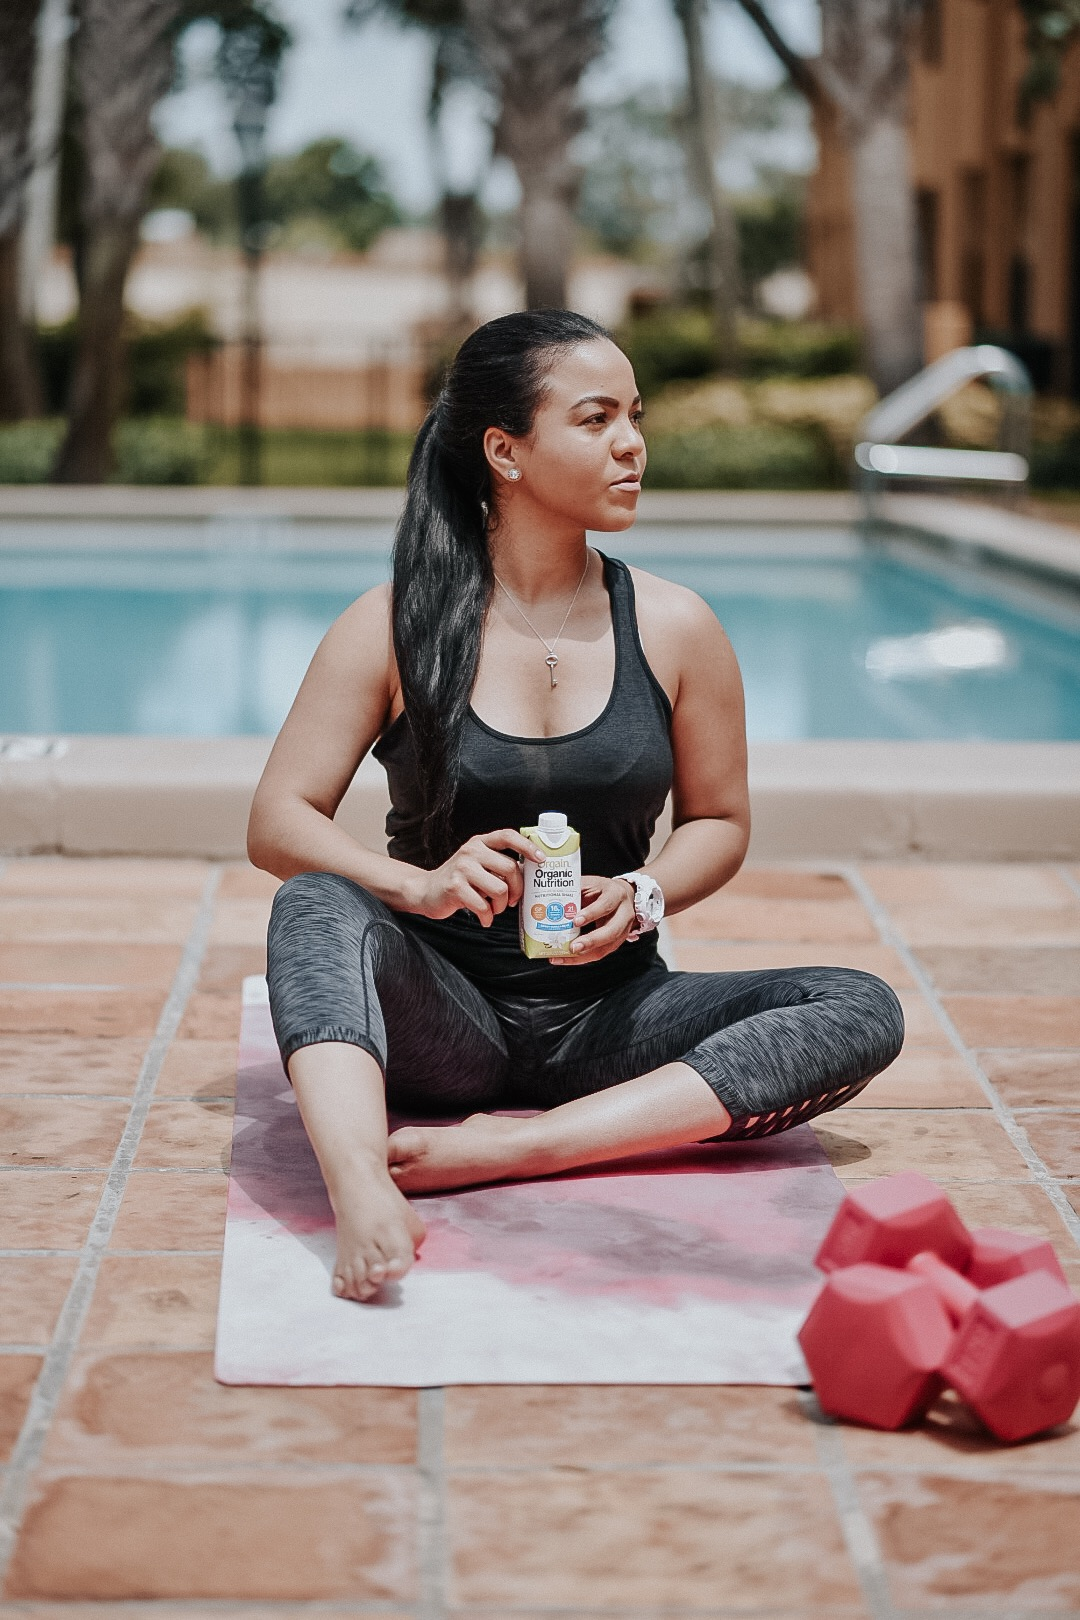 I'm always on-the-go, and after my workouts, I just need to give my body the right fuel! Here I'm sharing the nutritional shake I've been drinking after my workouts whenever I need to keep going!